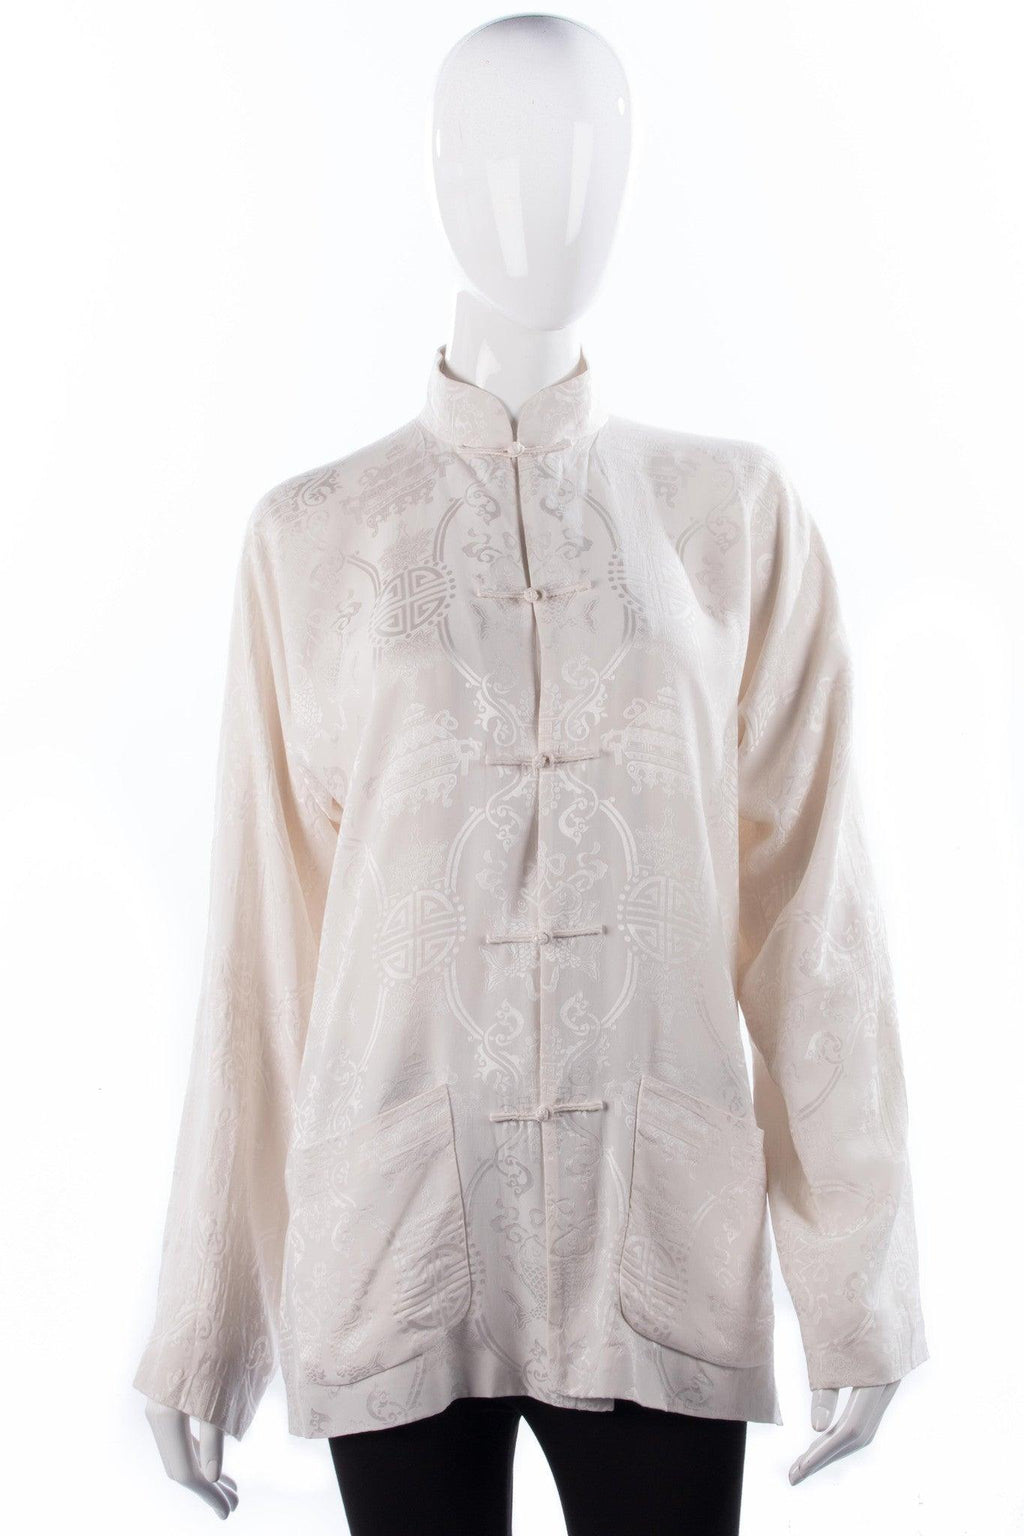 Shanghai Tang Long Chinese Style Jacket 100% Silk White UK Size 8